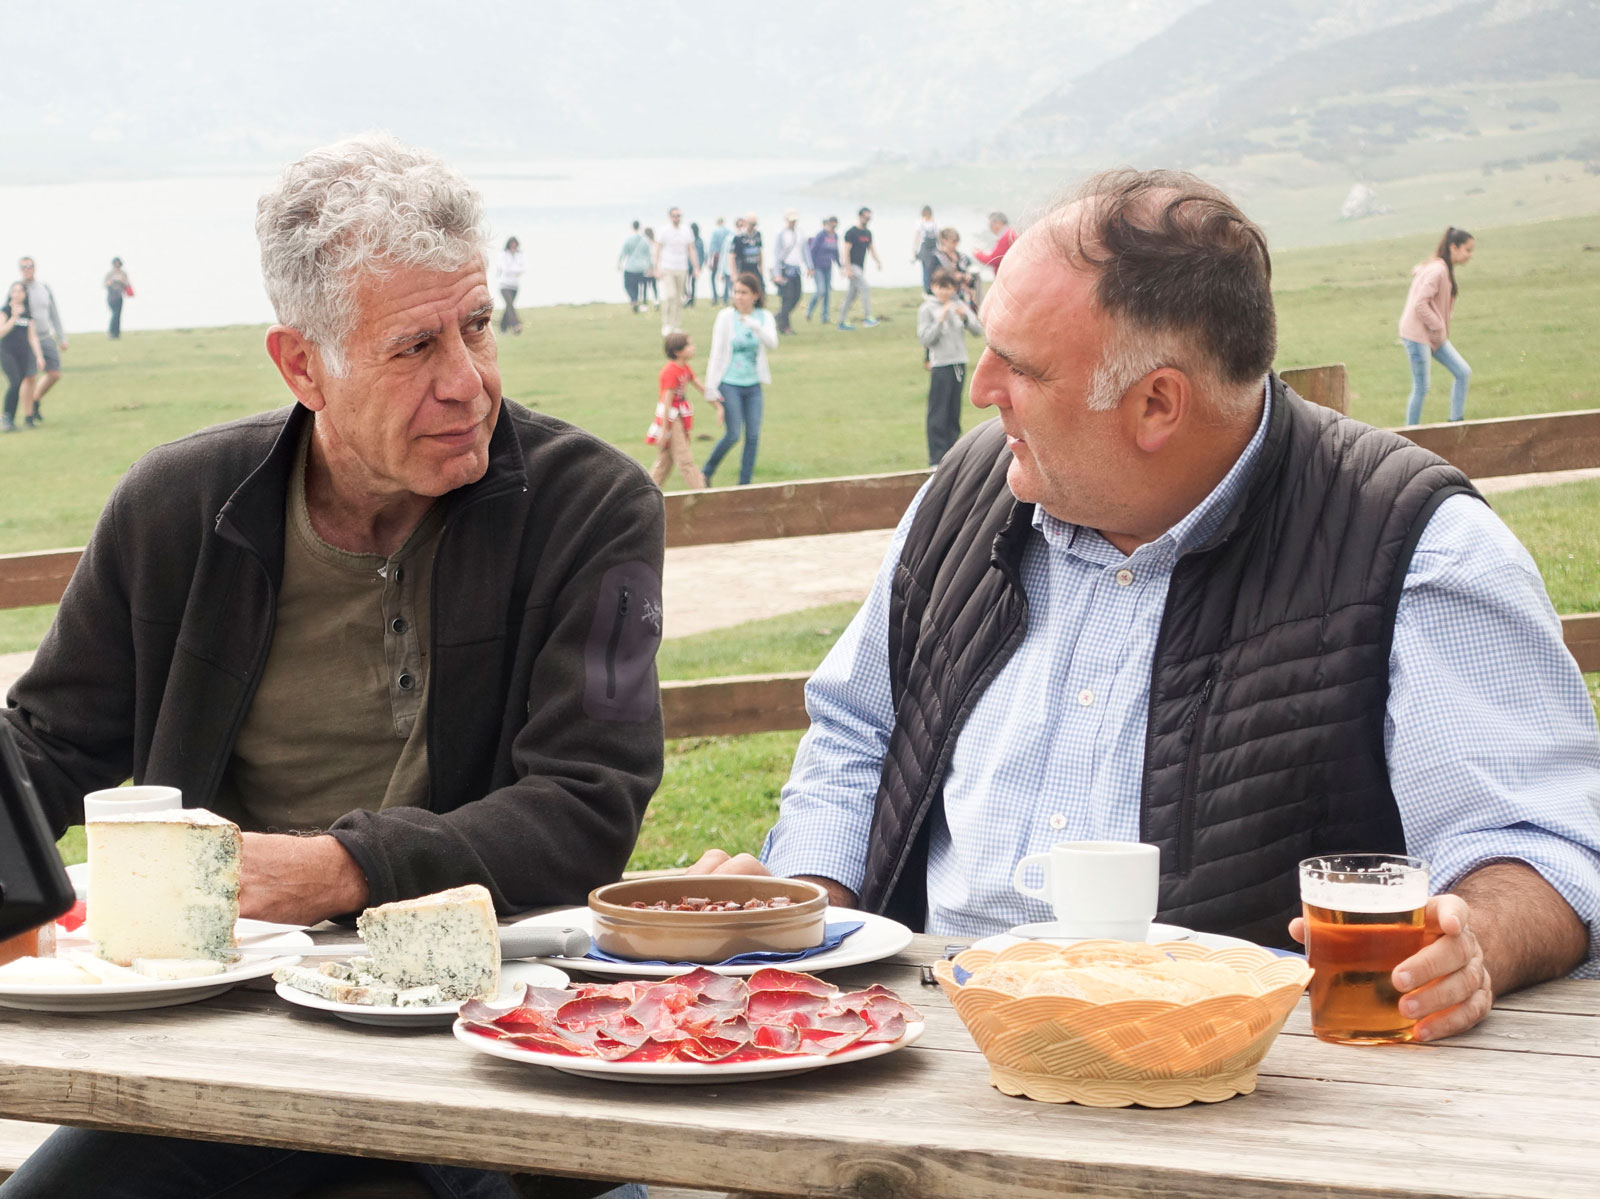 Here's What's in Store for Anthony Bourdain and José Andrés' Trip to Spain | Food & Wine